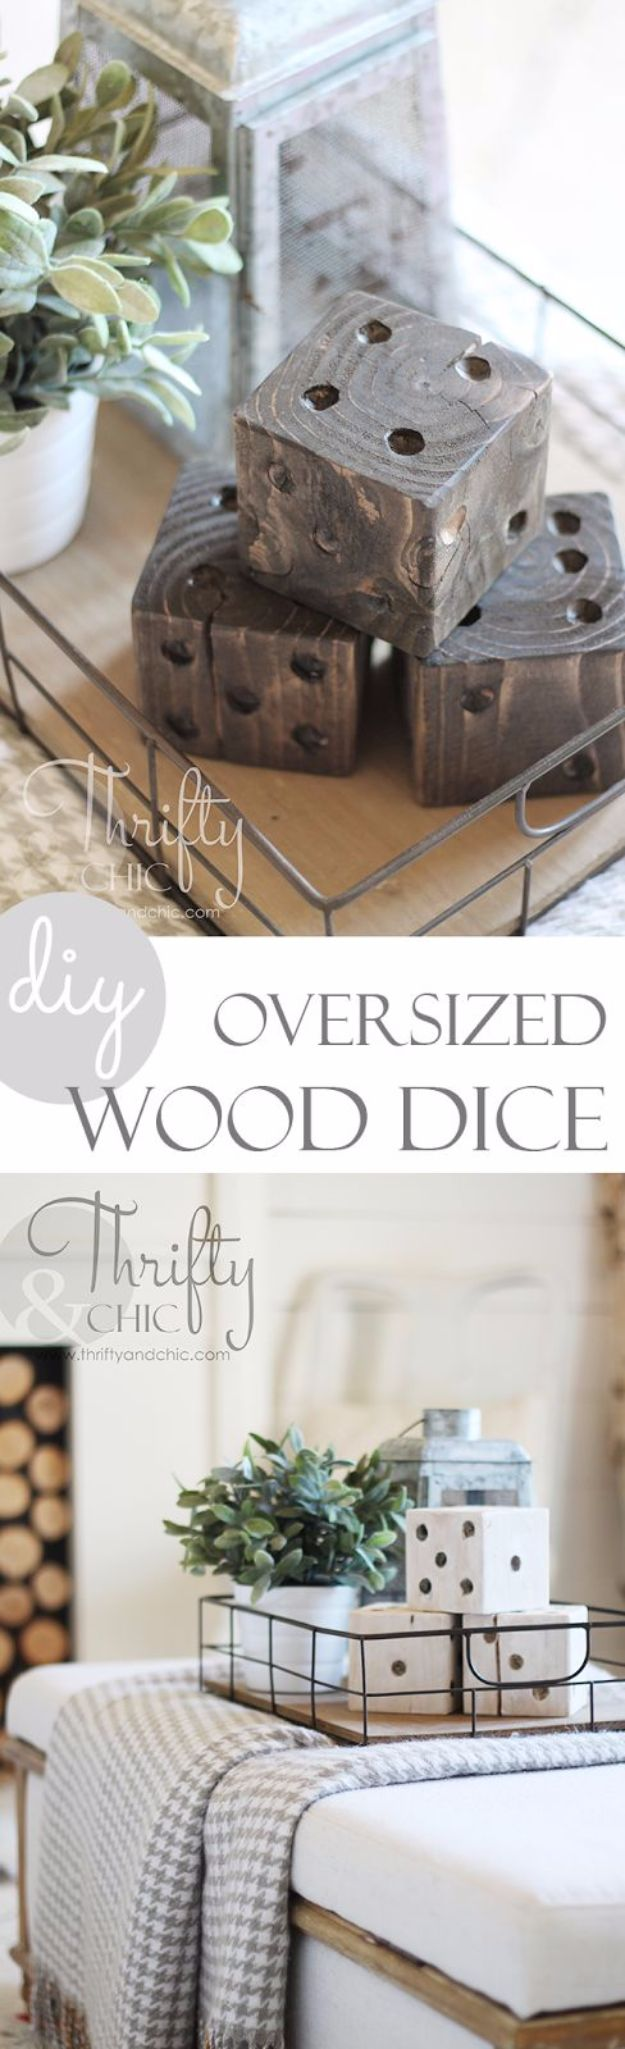 Farmhouse Decor to Make And Sell - DIY Oversized Wood Dice - Easy DIY Home Decor and Rustic Craft Ideas - Step by Step Country Crafts, Farmhouse Decor To Make and Sell on Etsy and at Craft Fairs - Tutorials and Instructions for Creative Ways to Make Money - Best Vintage Farmhouse DIY For Living Room, Bedroom, Walls and Gifts http://diyjoy.com/farmhouse-decor-to-make-and-sell